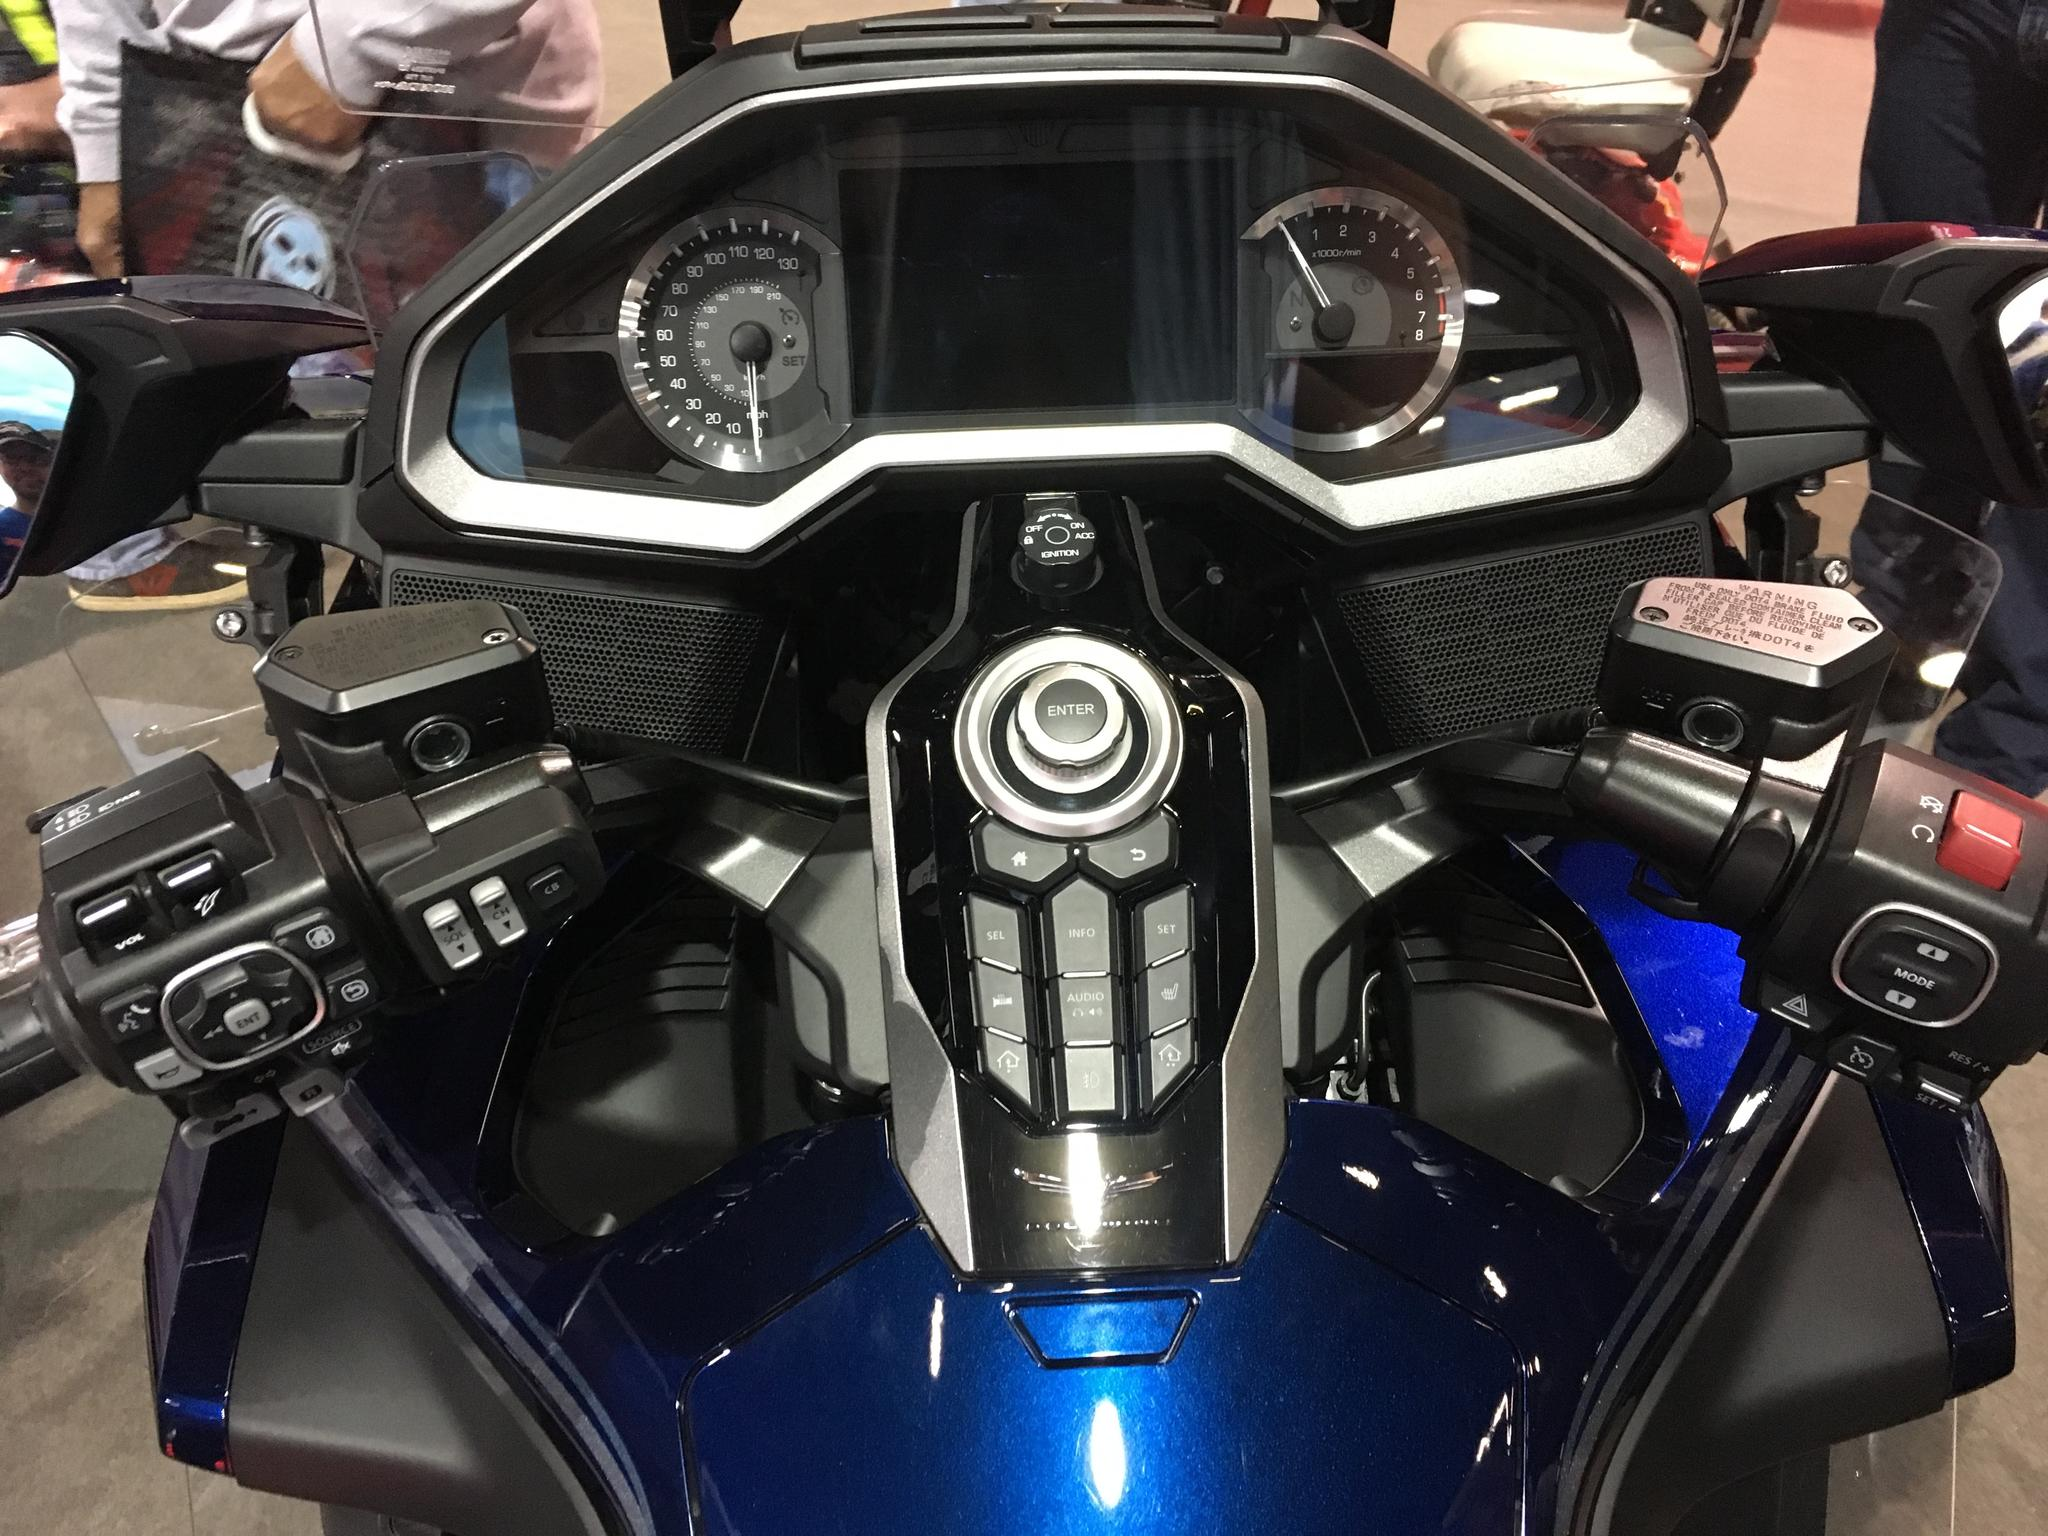 Ram mount for left handlebar with DCT and CB? - TheGLForum